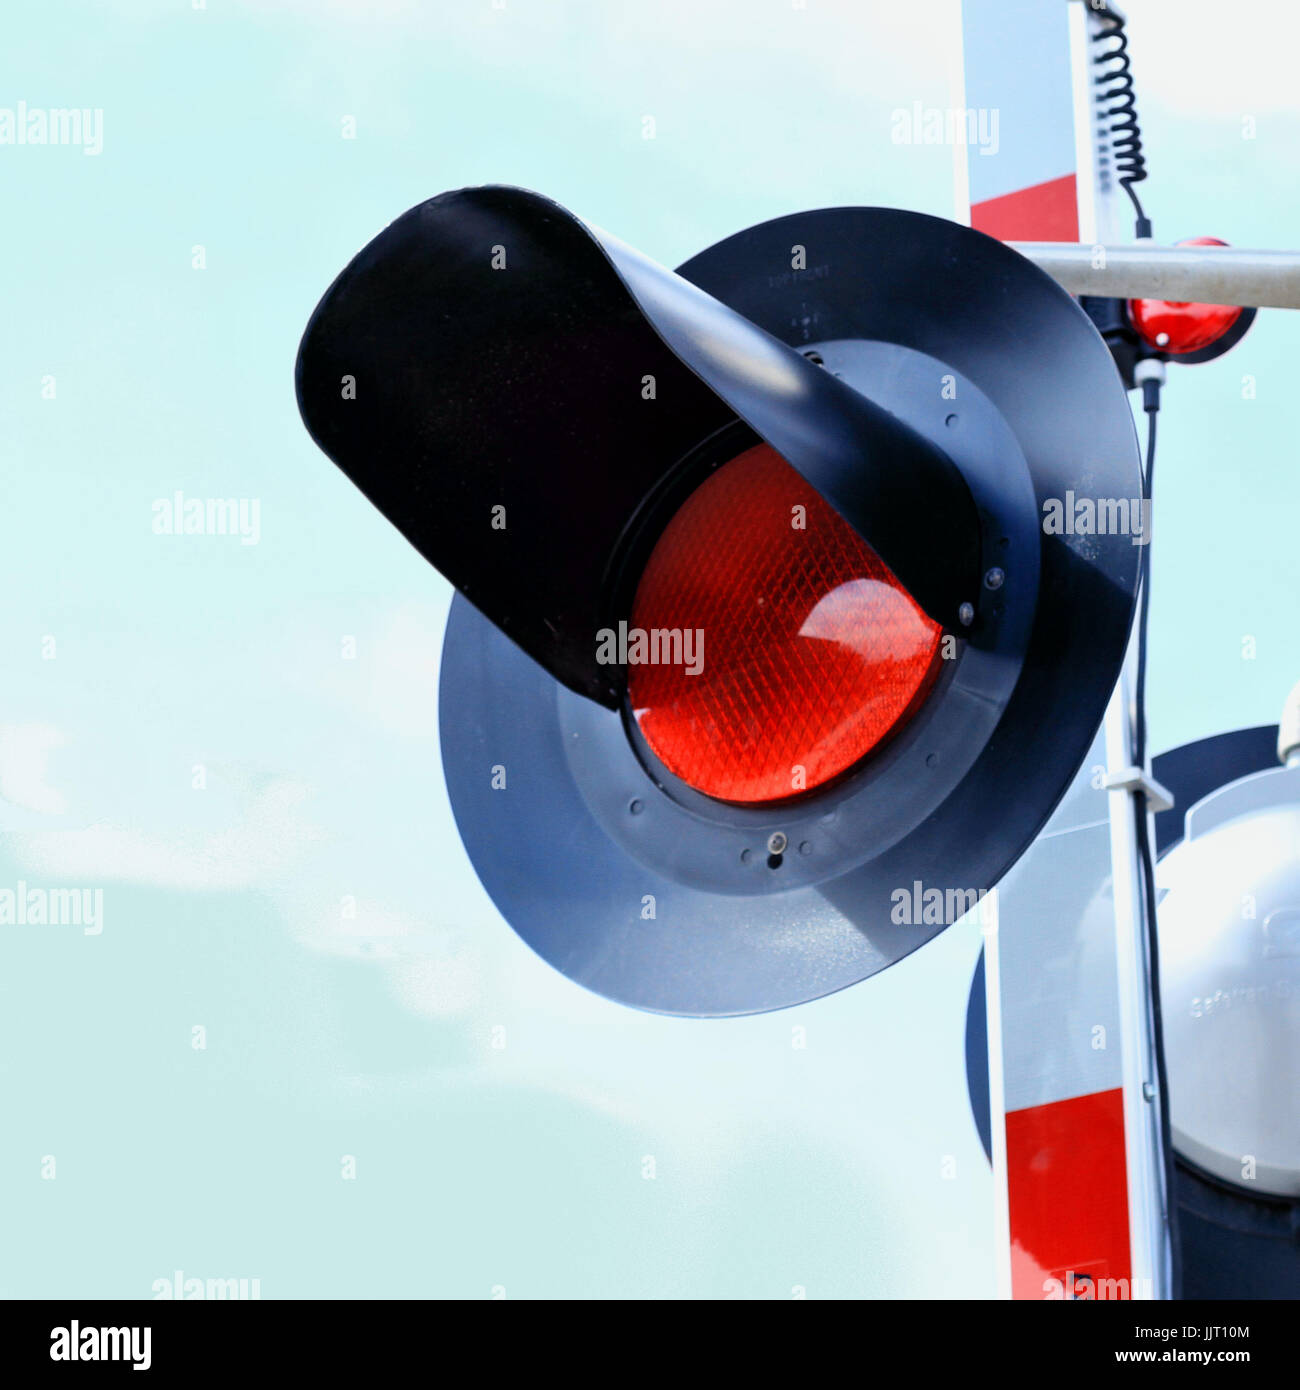 A railroad crossing light and arm stand at attention against a blue sky. - Stock Image